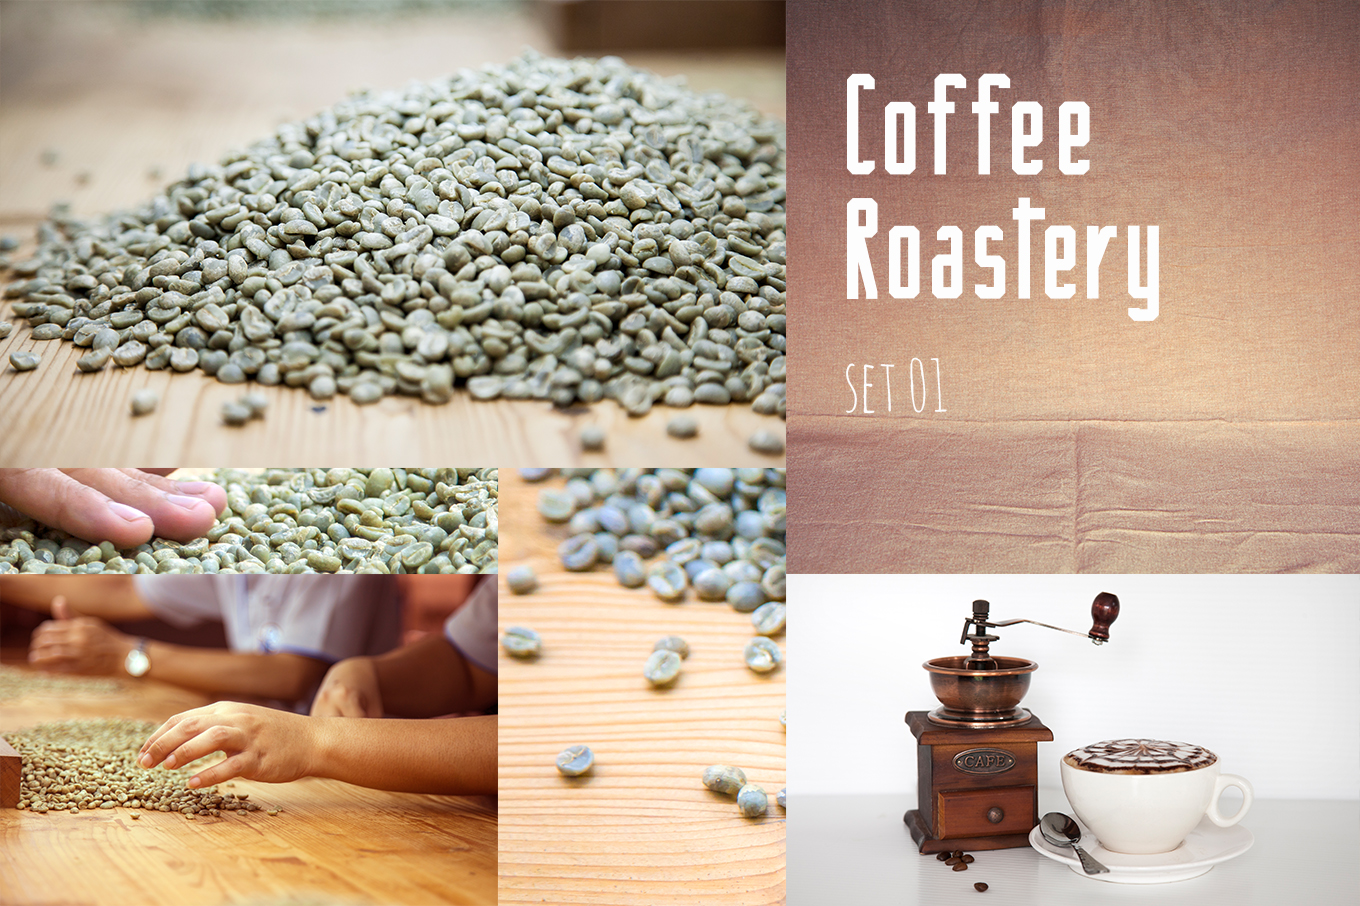 Coffee-roaster-collection